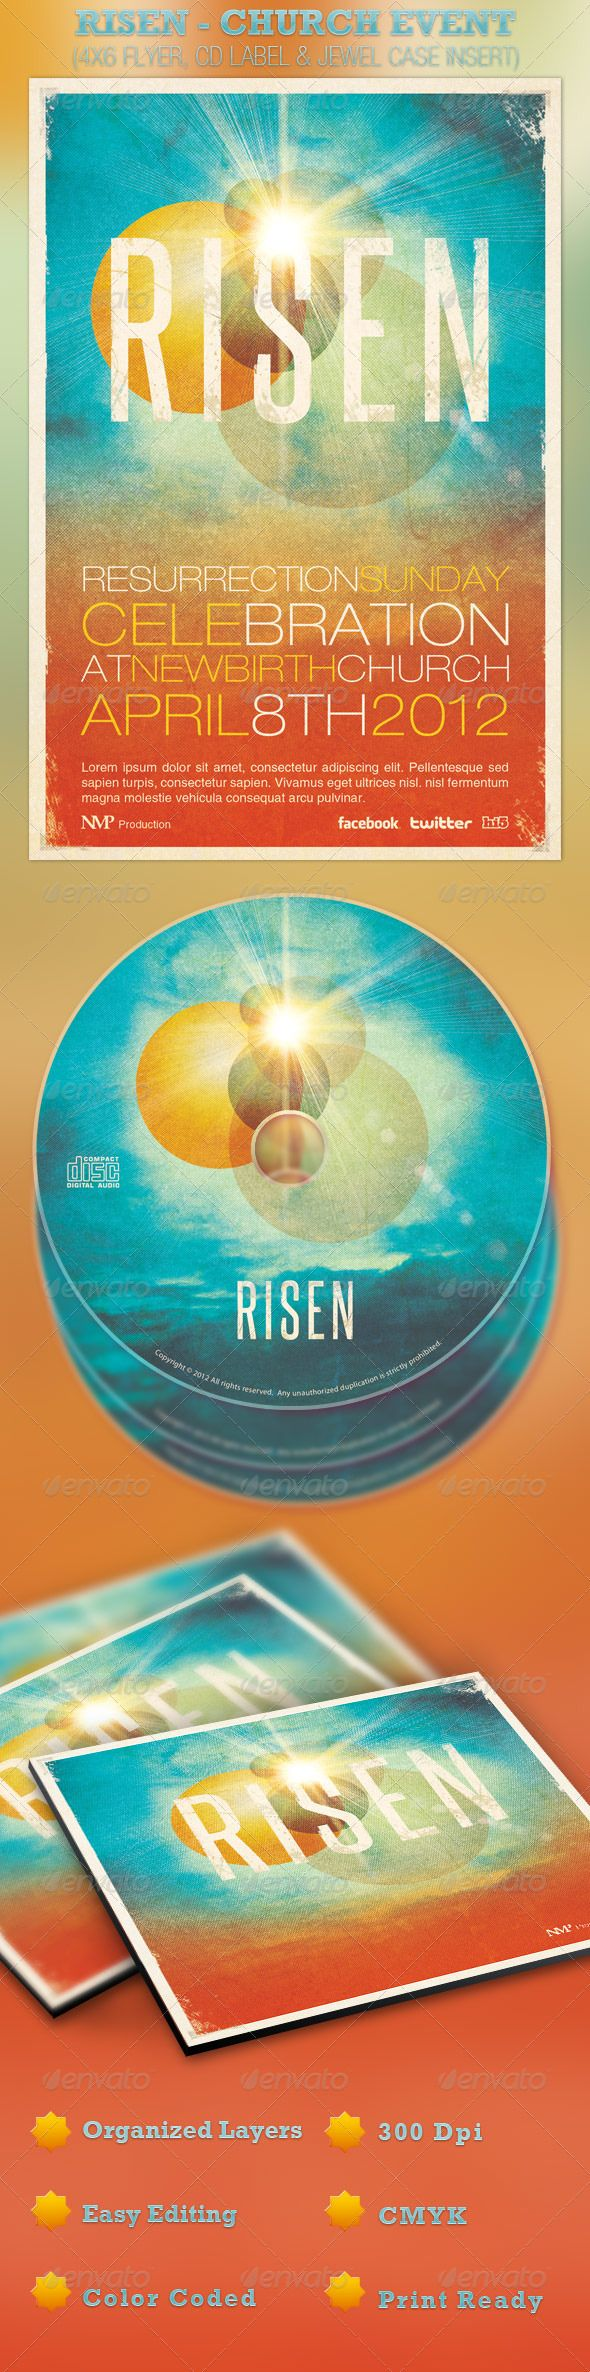 17 best images about church print social media ideas on risen church event flyer and cd template